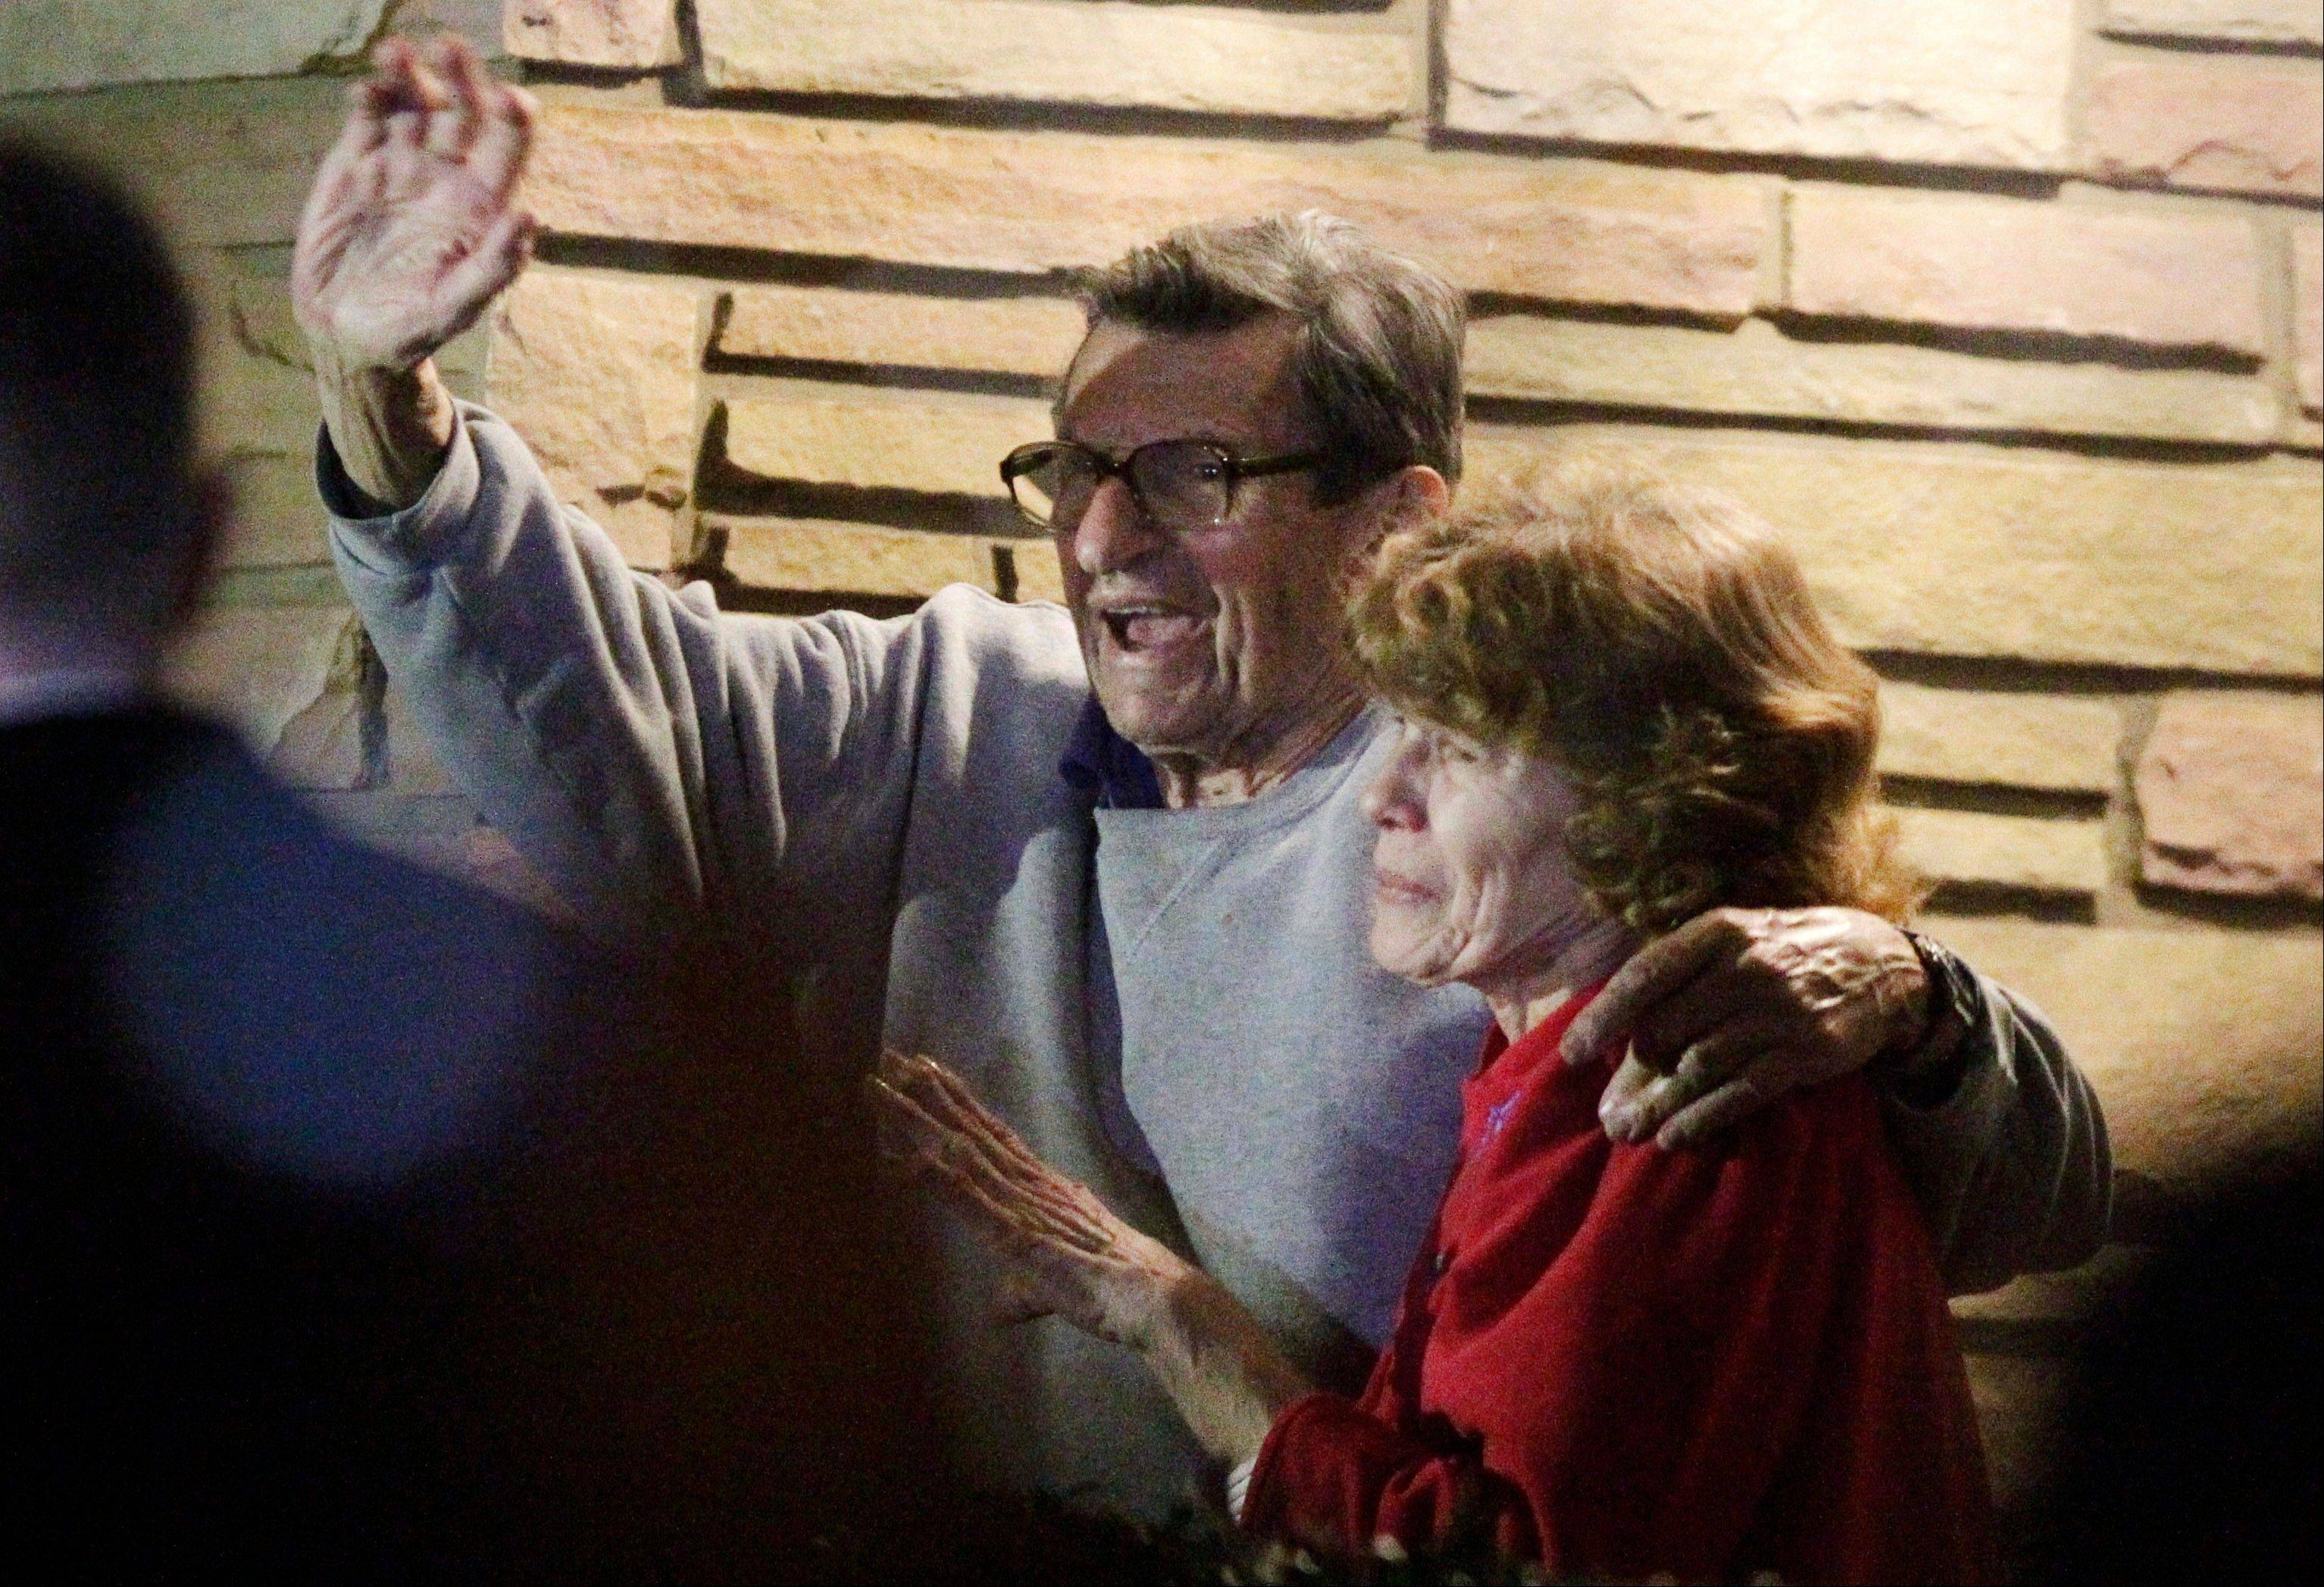 In this Nov. 9, 2011, photo, former Penn State coach Joe Paterno and his wife, Sue, stand on their porch to thank supporters gathered outside their home in State College, Pa. The Paterno family; s detailed response to a critical report on the handling of child abuse allegations against former assistant coach Jerry Sandusky has been released to the public.